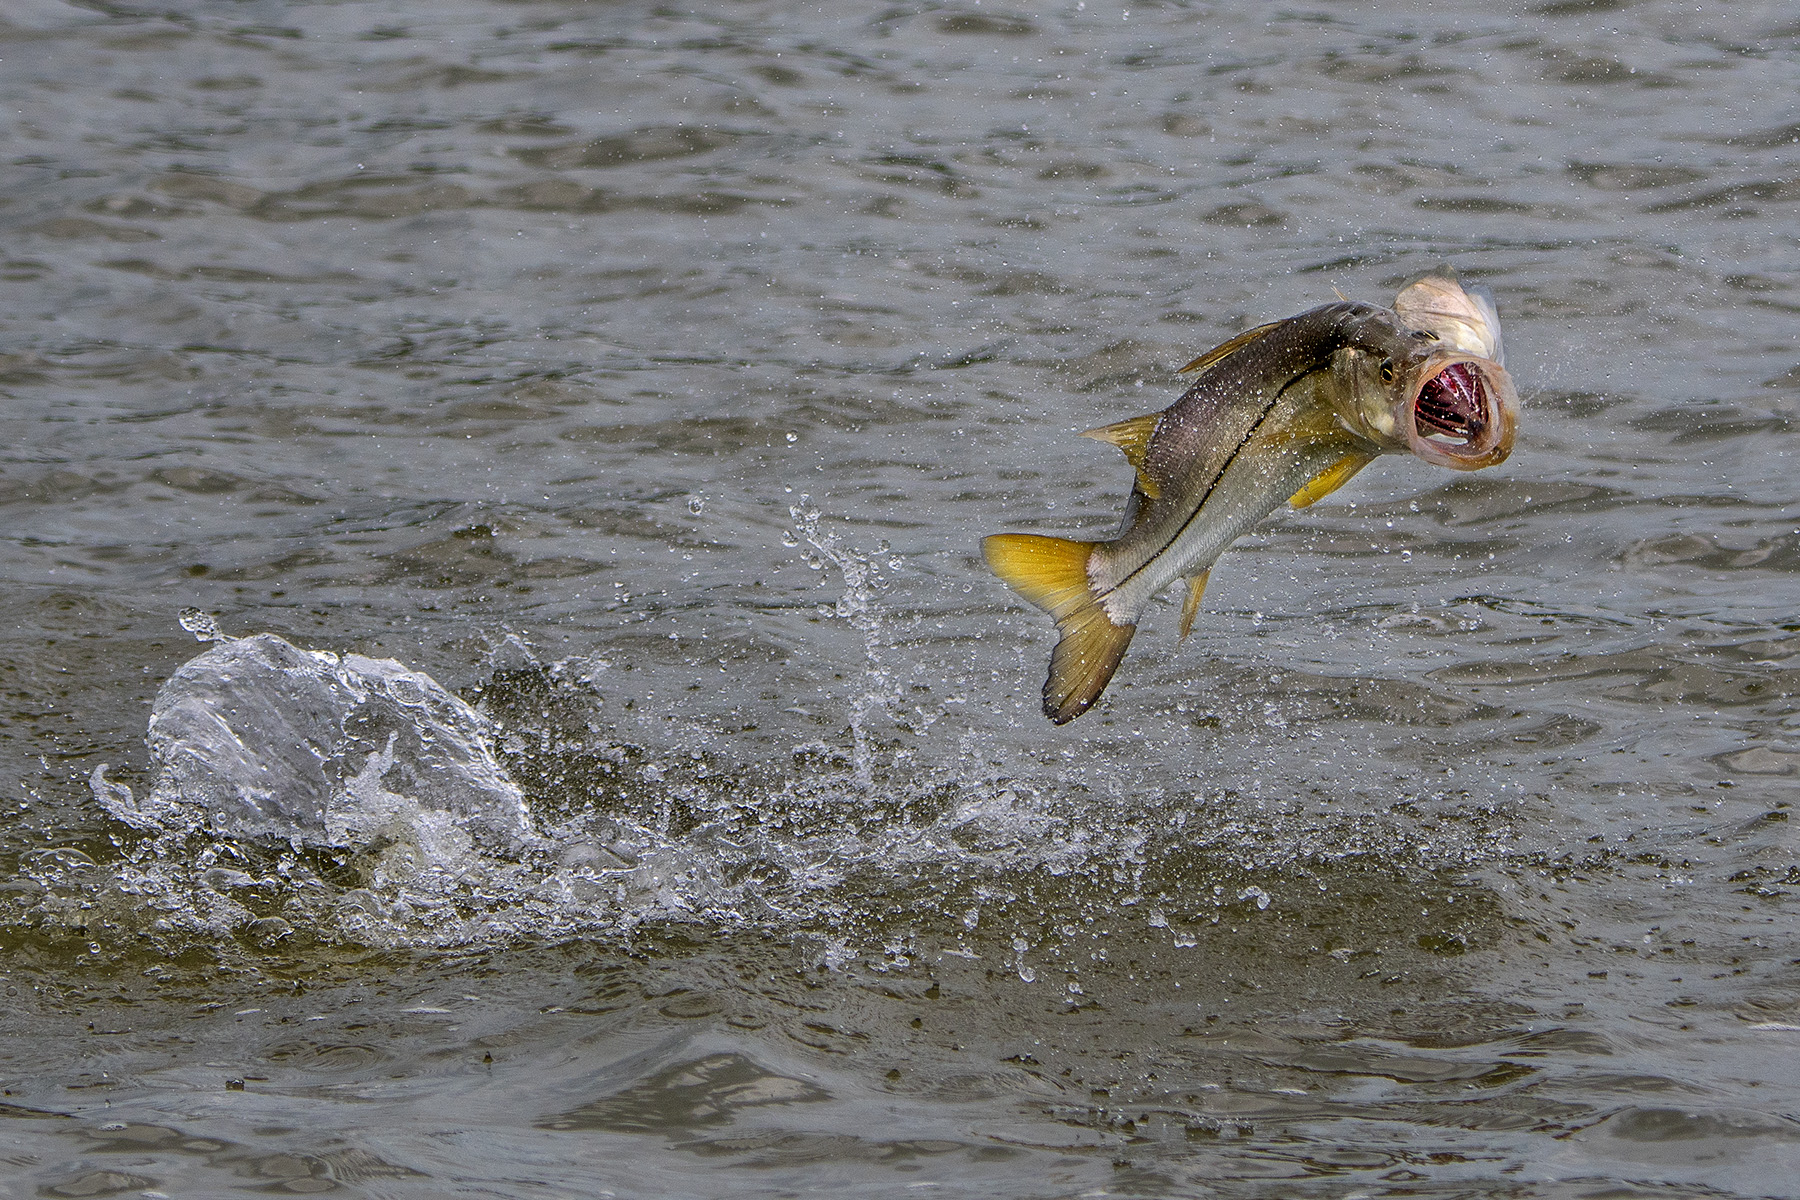 snook-fishing-in-the-everglades-with-saltwater-experience-on-waypoint-tv.jpg